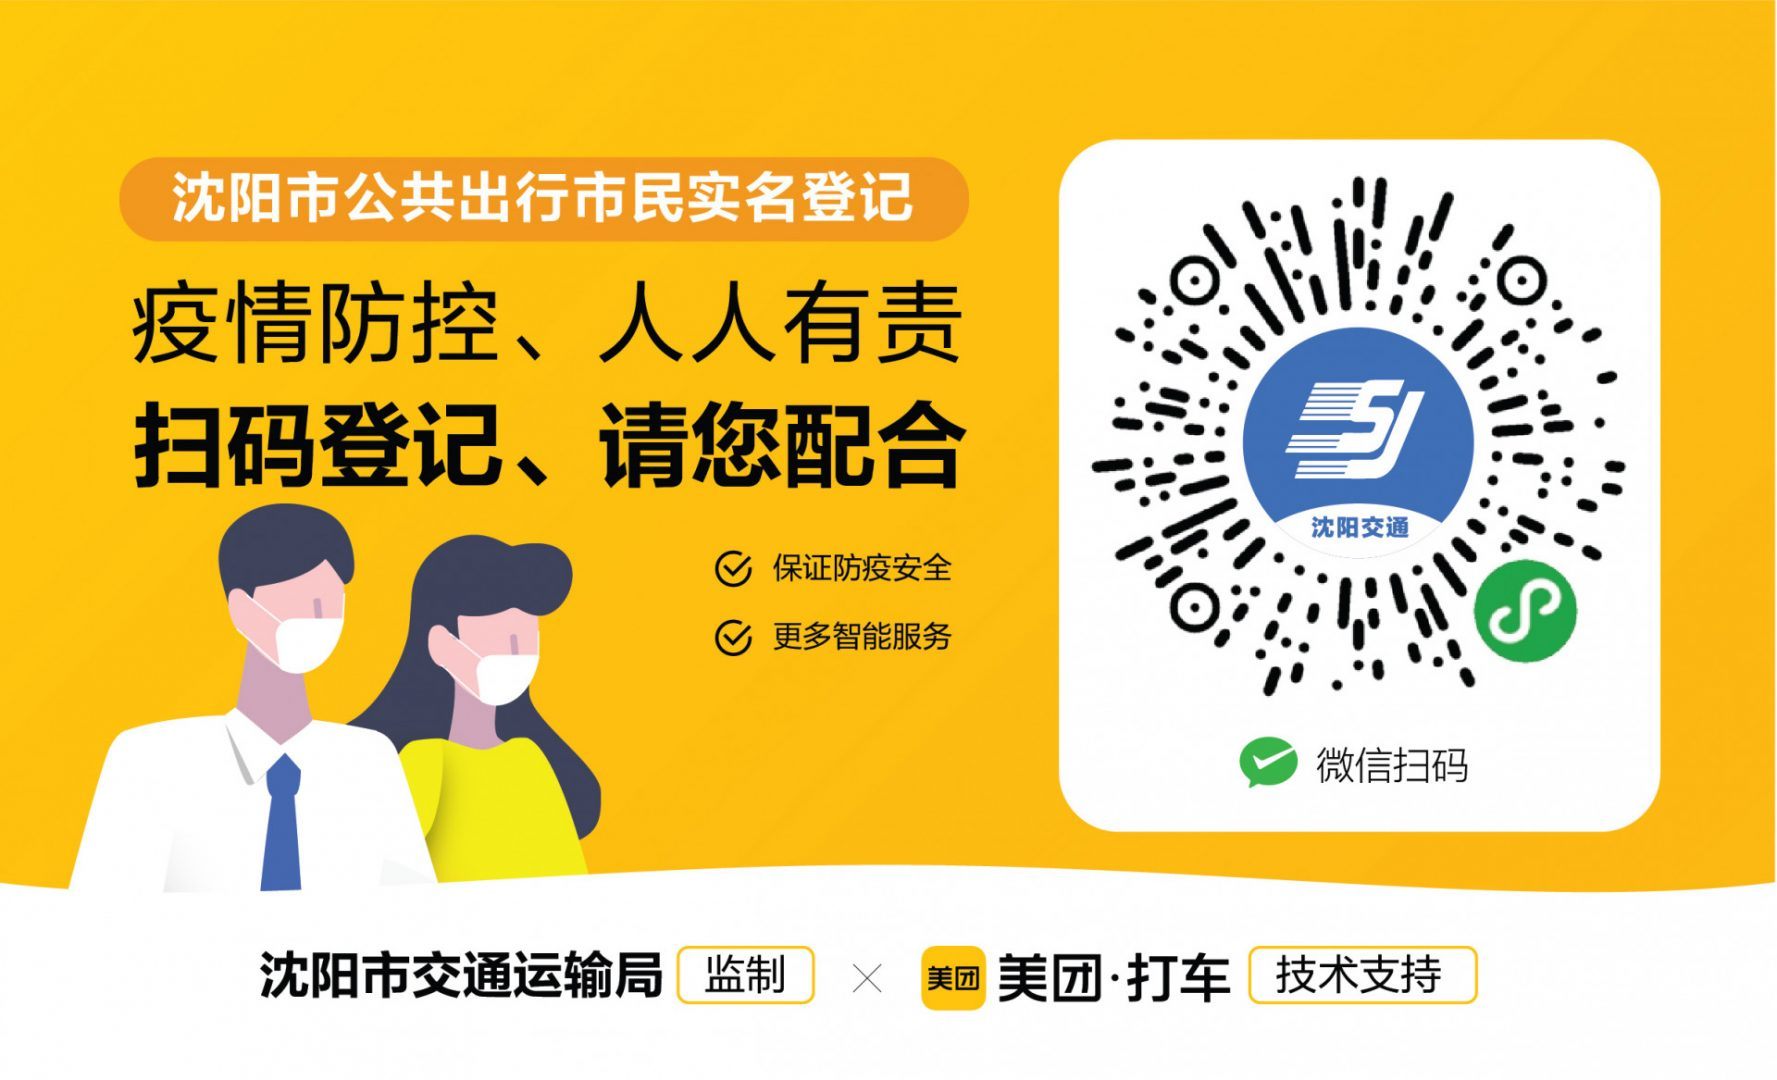 Meituan Dianping Real Name Registration System